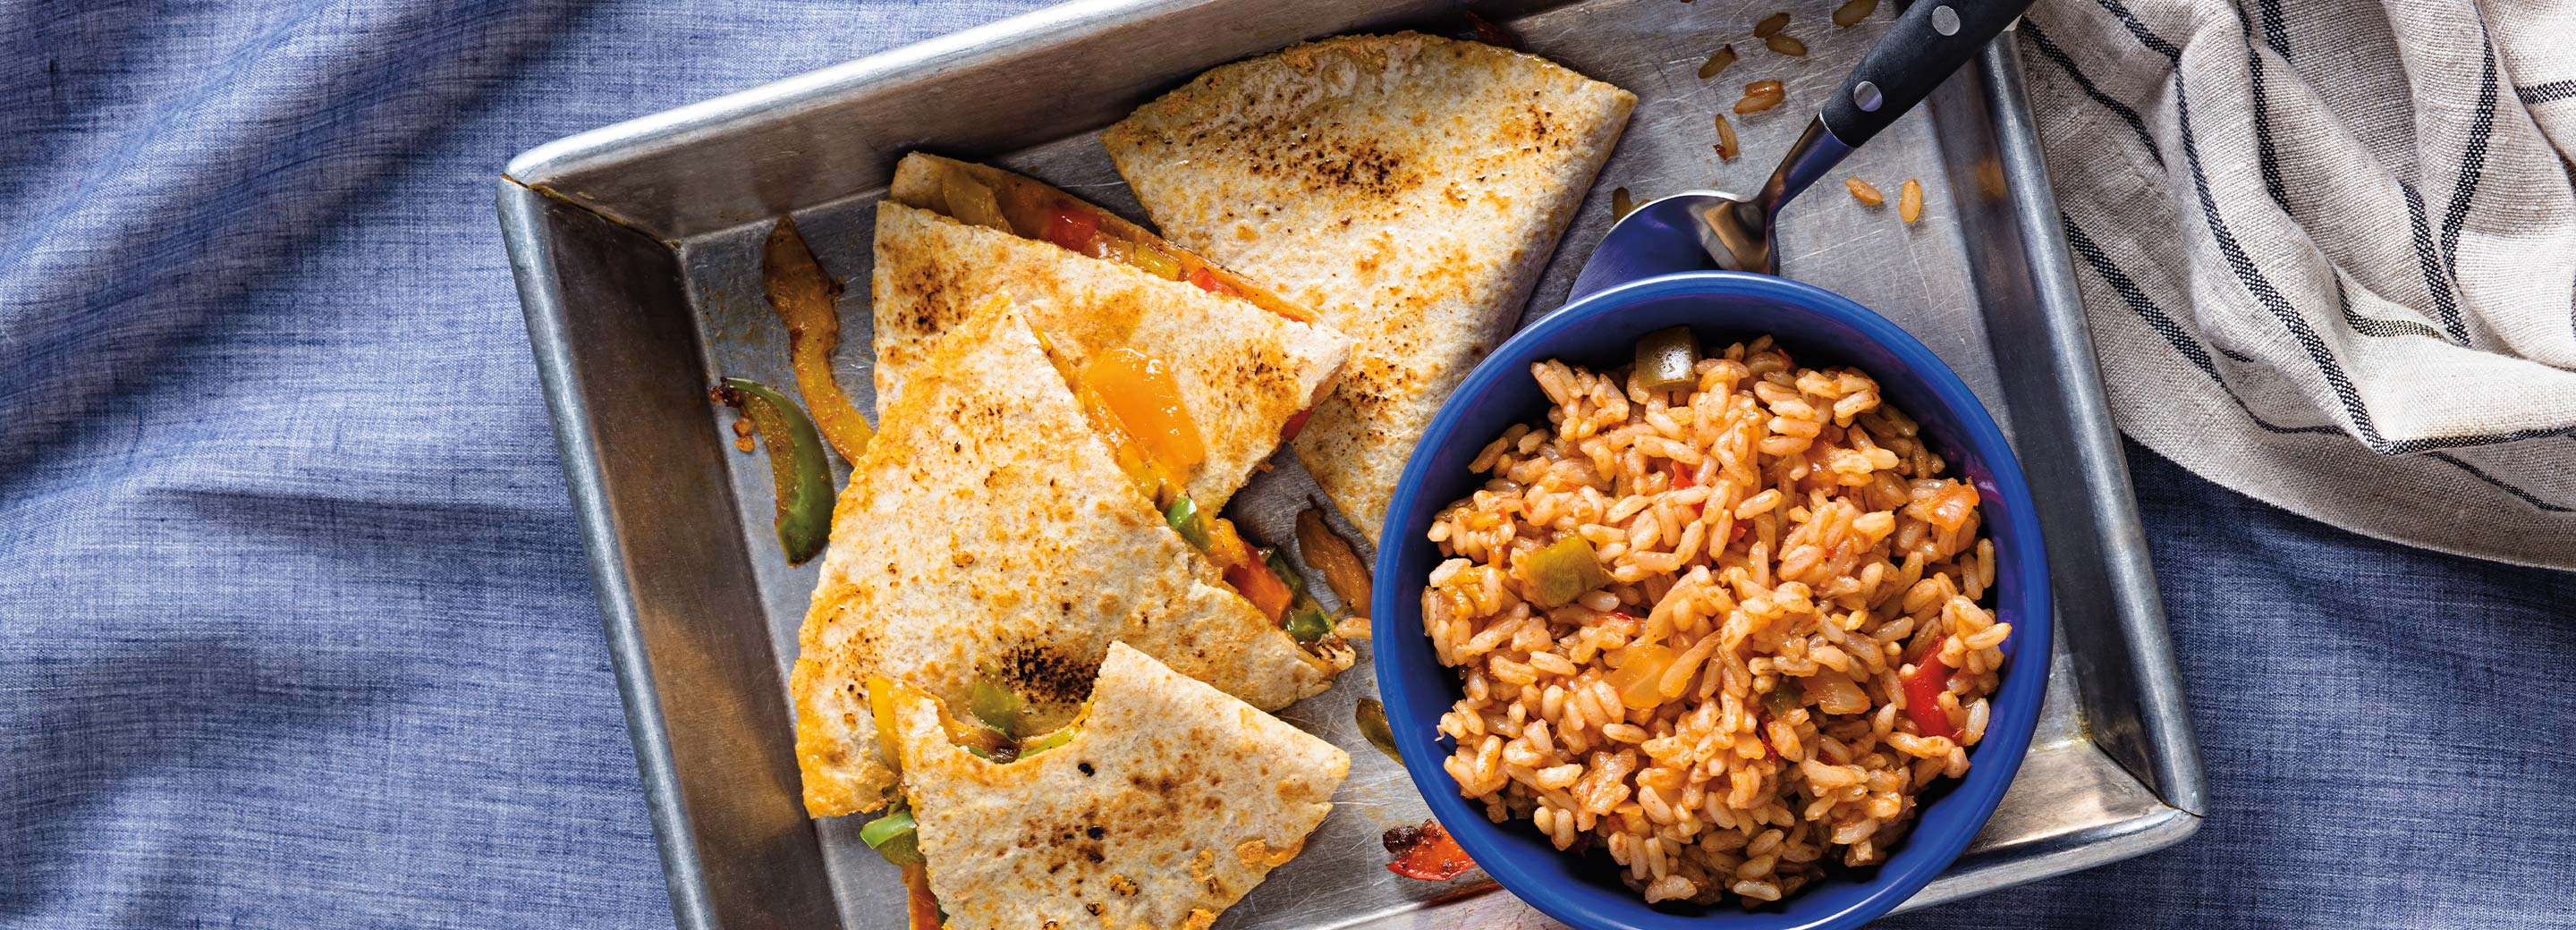 Tex-Mex Quesadilla with Rice